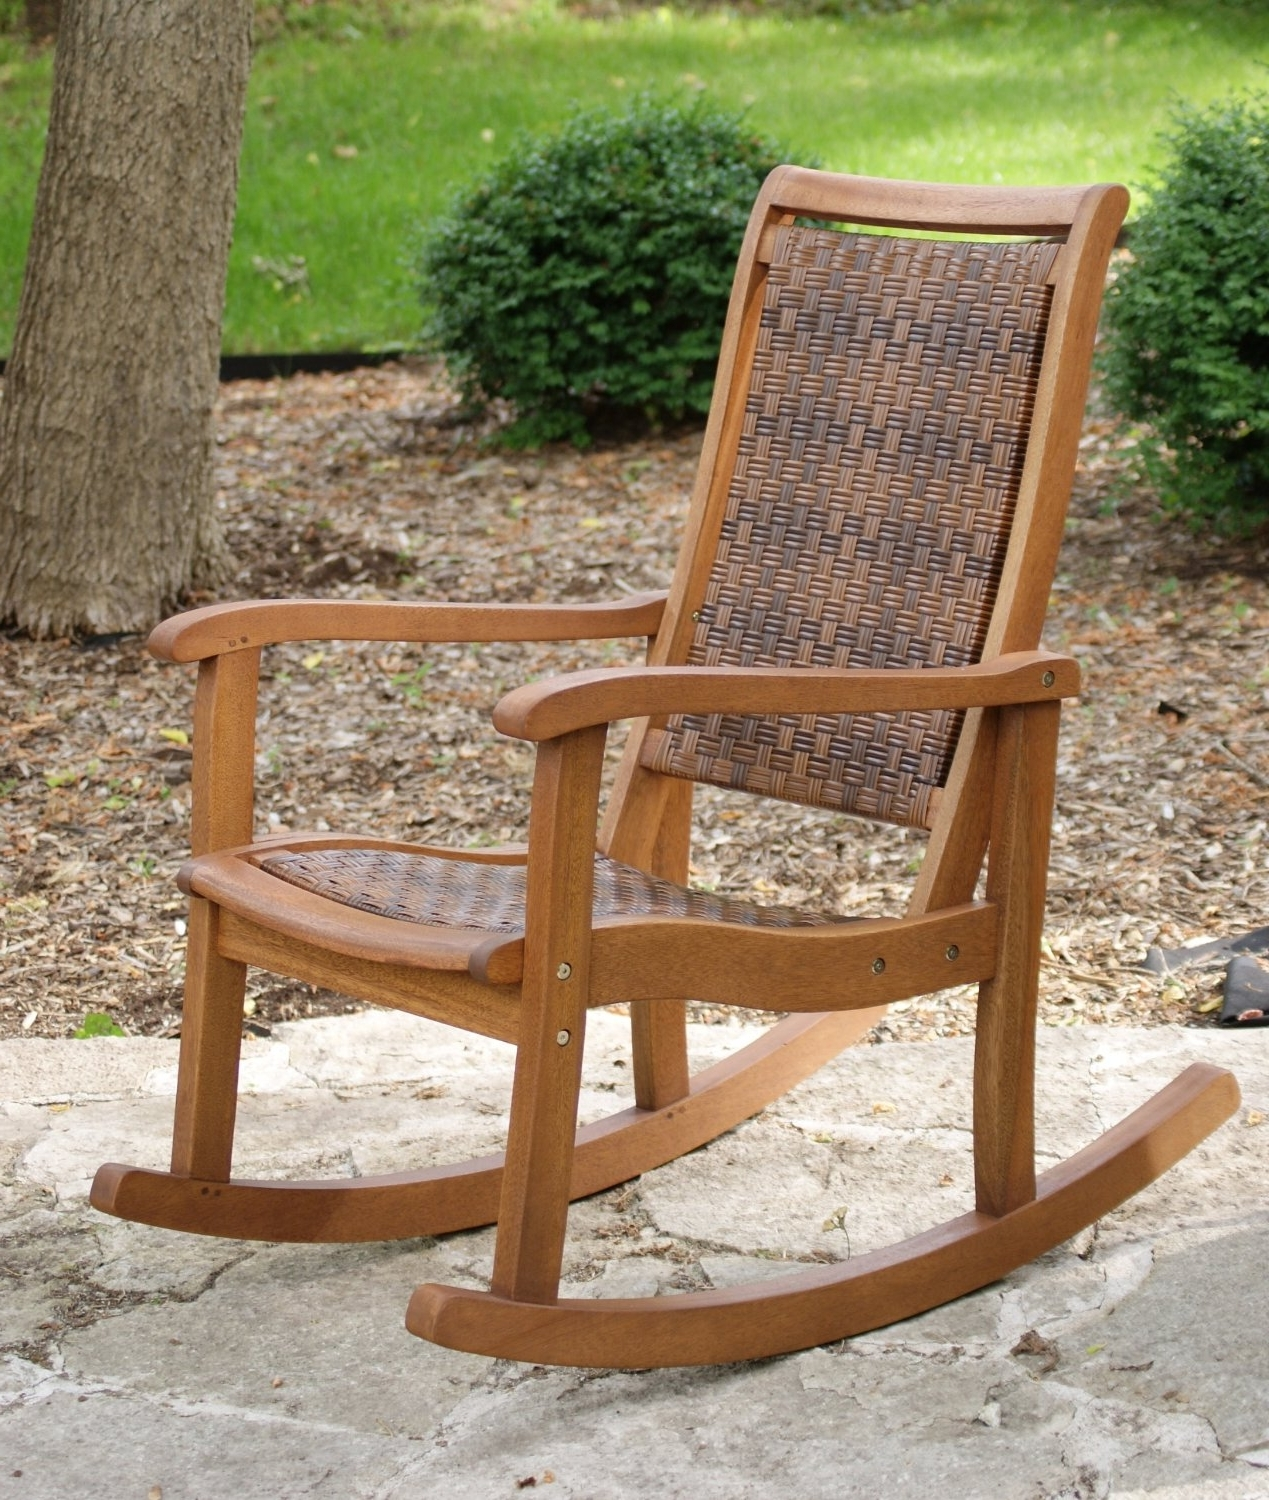 Most Recent Outdoor Wicker Rocking Chairs Regarding Great Rocking Patio Chairs Outdoor Wicker Rocking Chairs Patio (View 15 of 20)